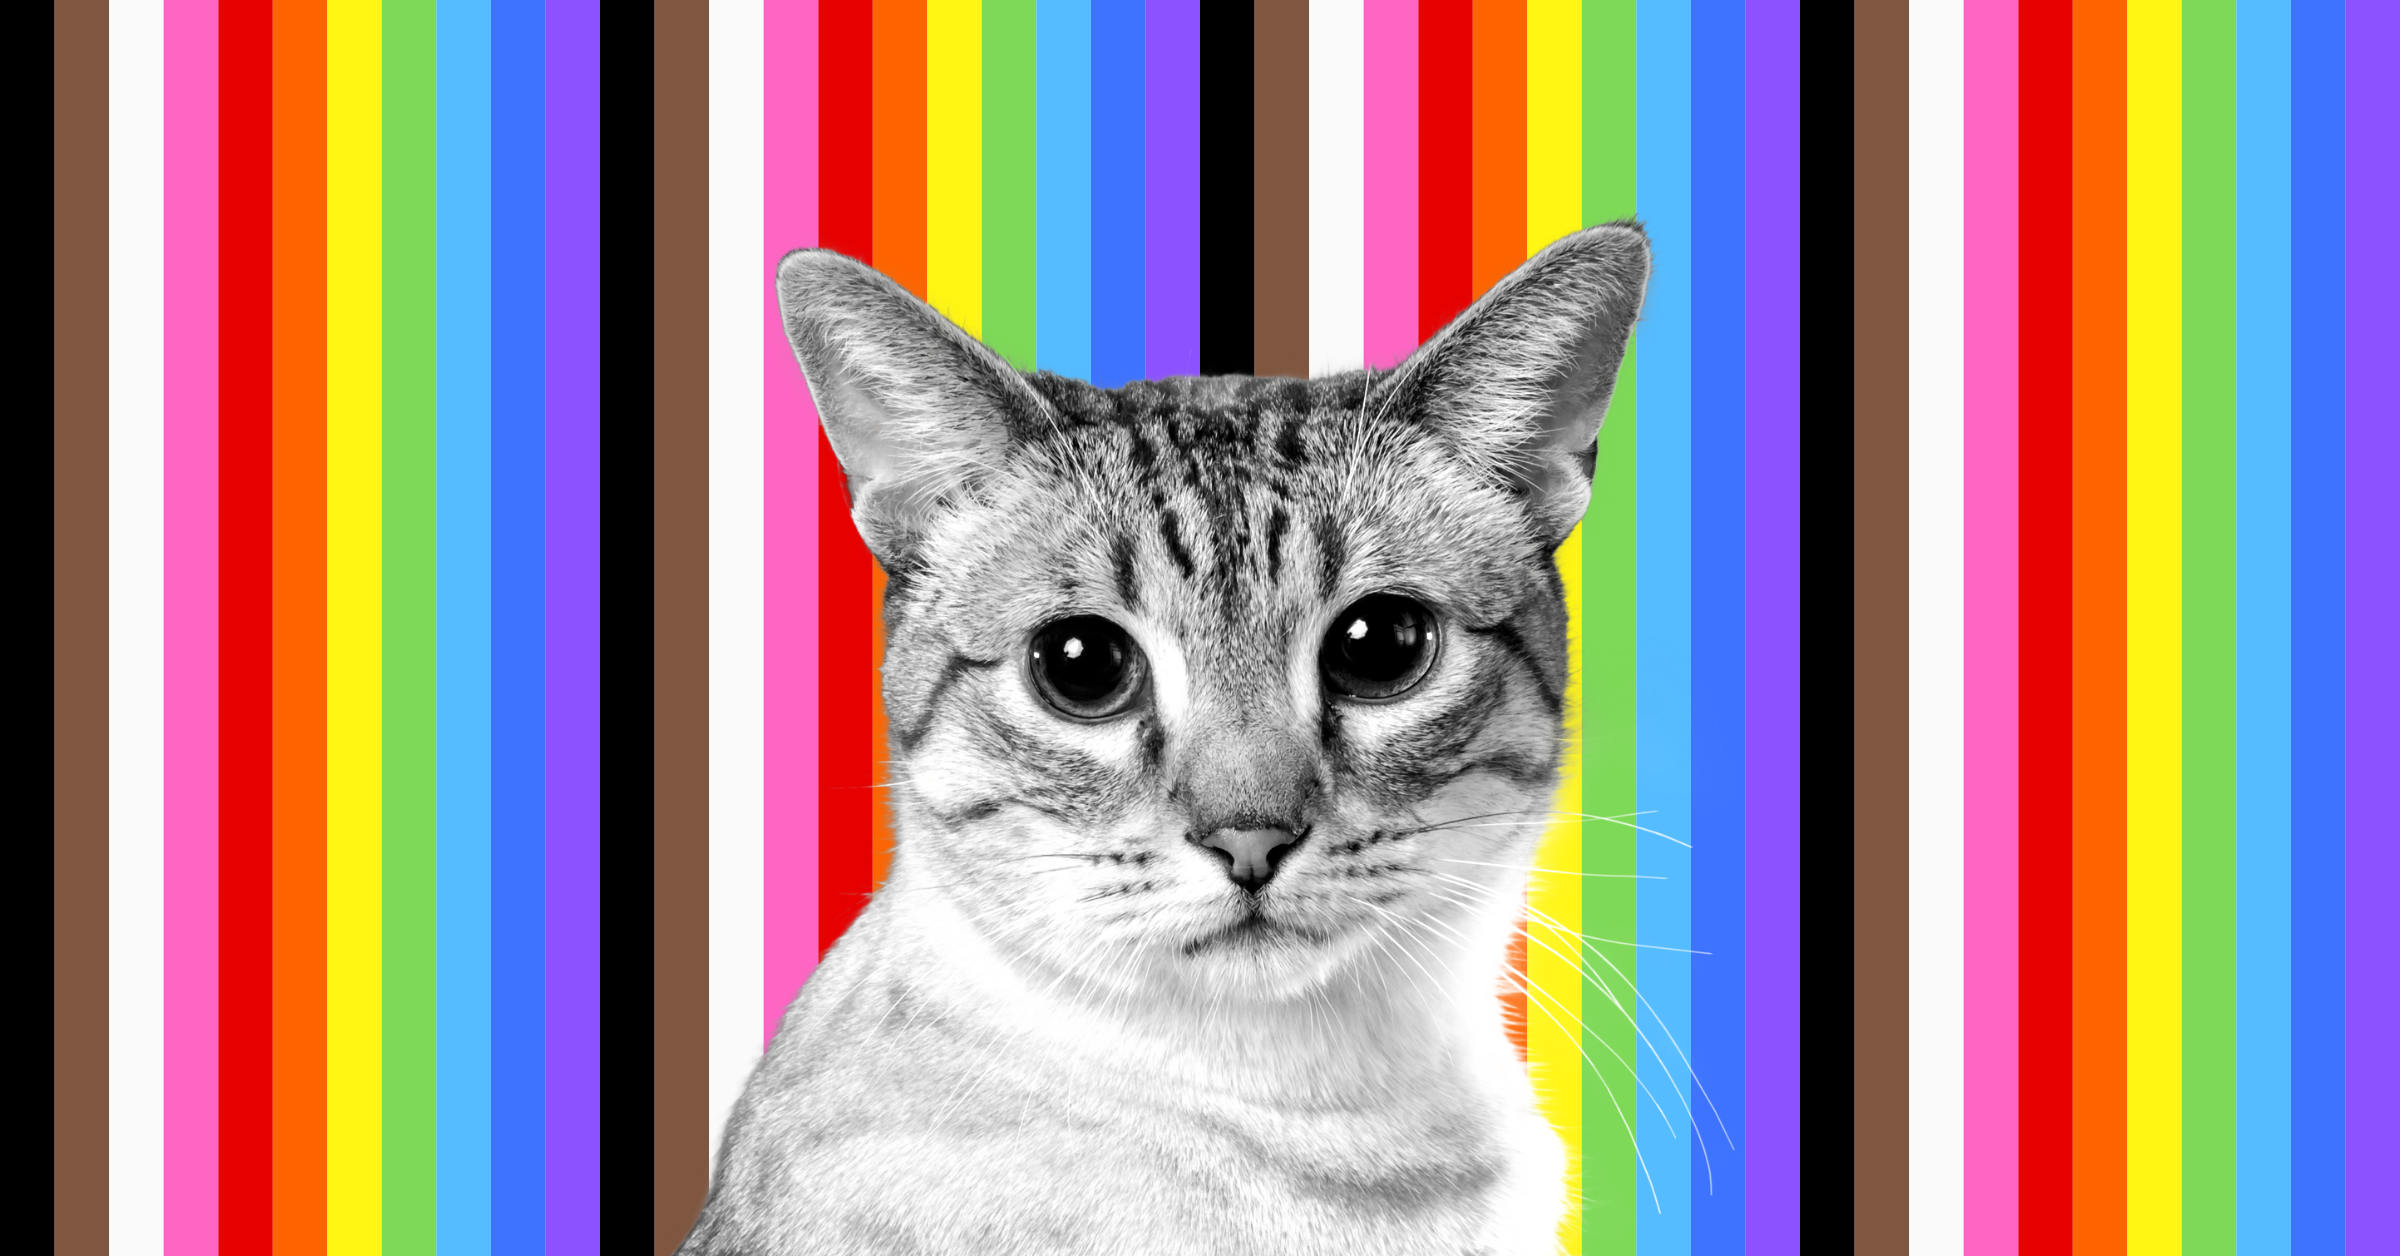 In front of a striped rainbow backdrop, a cat peers at you, the reader